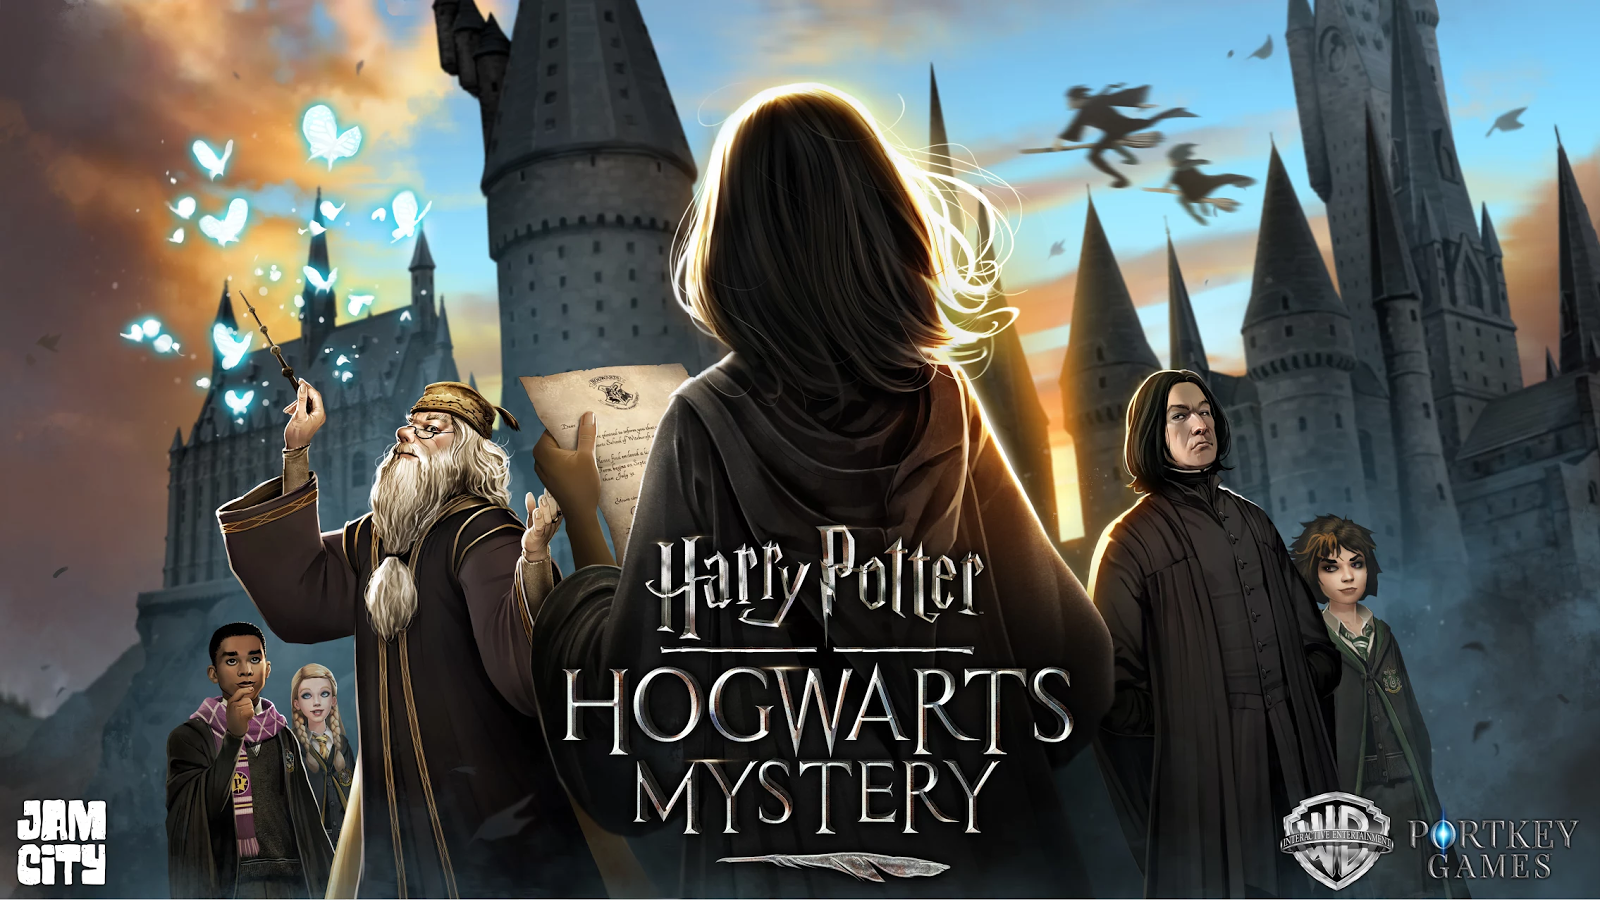 Here's the Snazzy Teaser Trailer for the Harry Potter Hogwarts Mystery Game